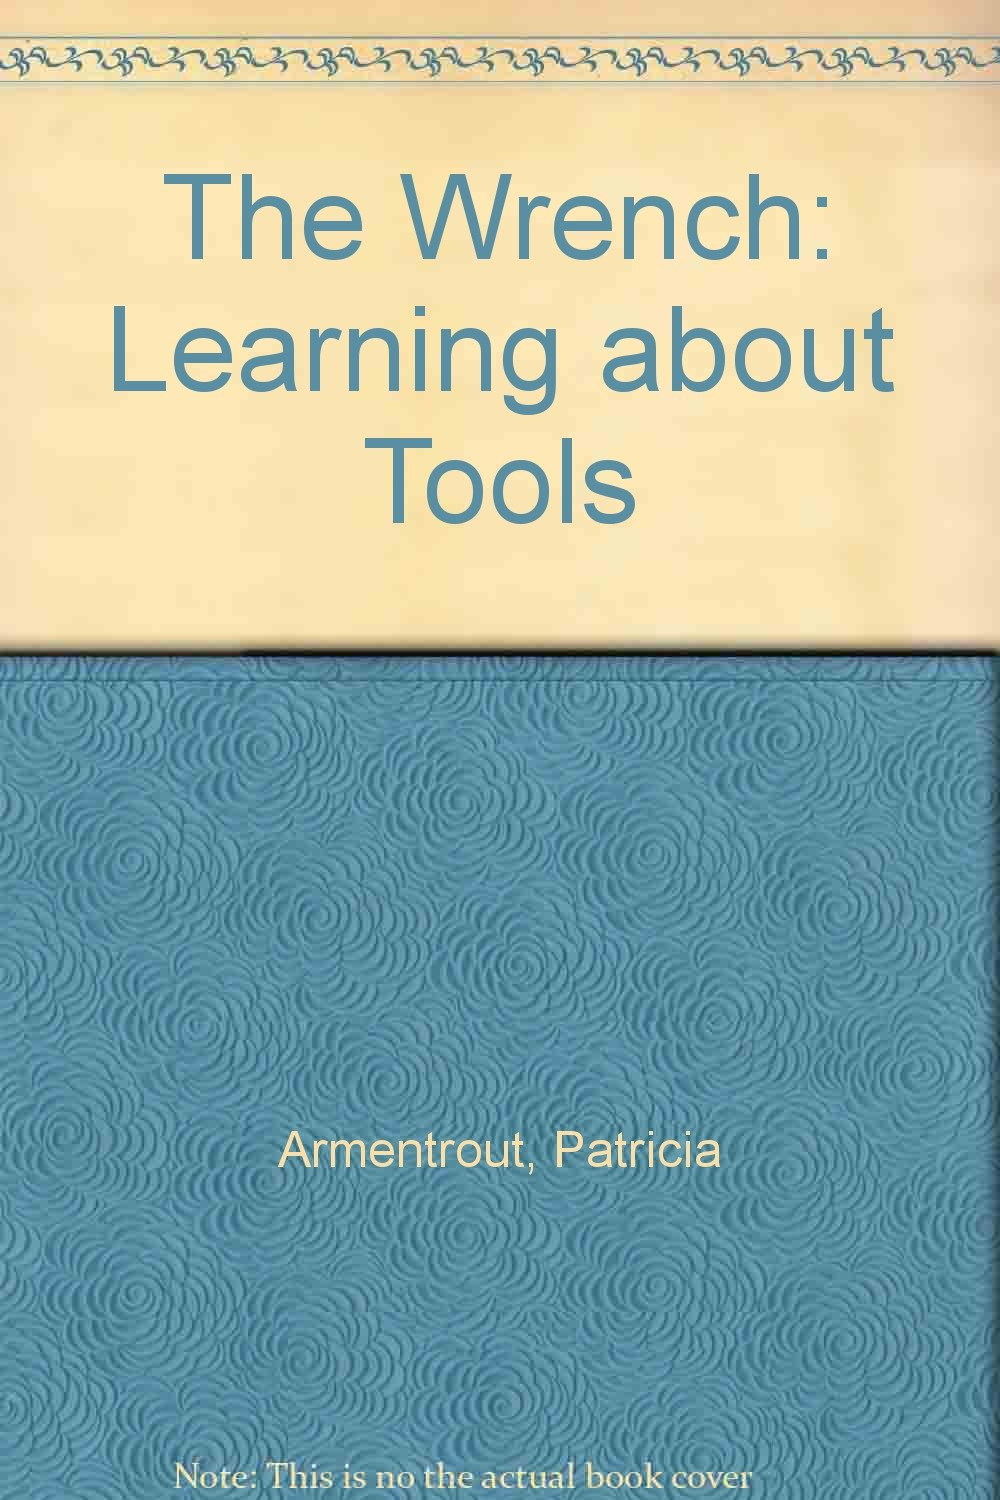 The Wrench (Learning About Tools)